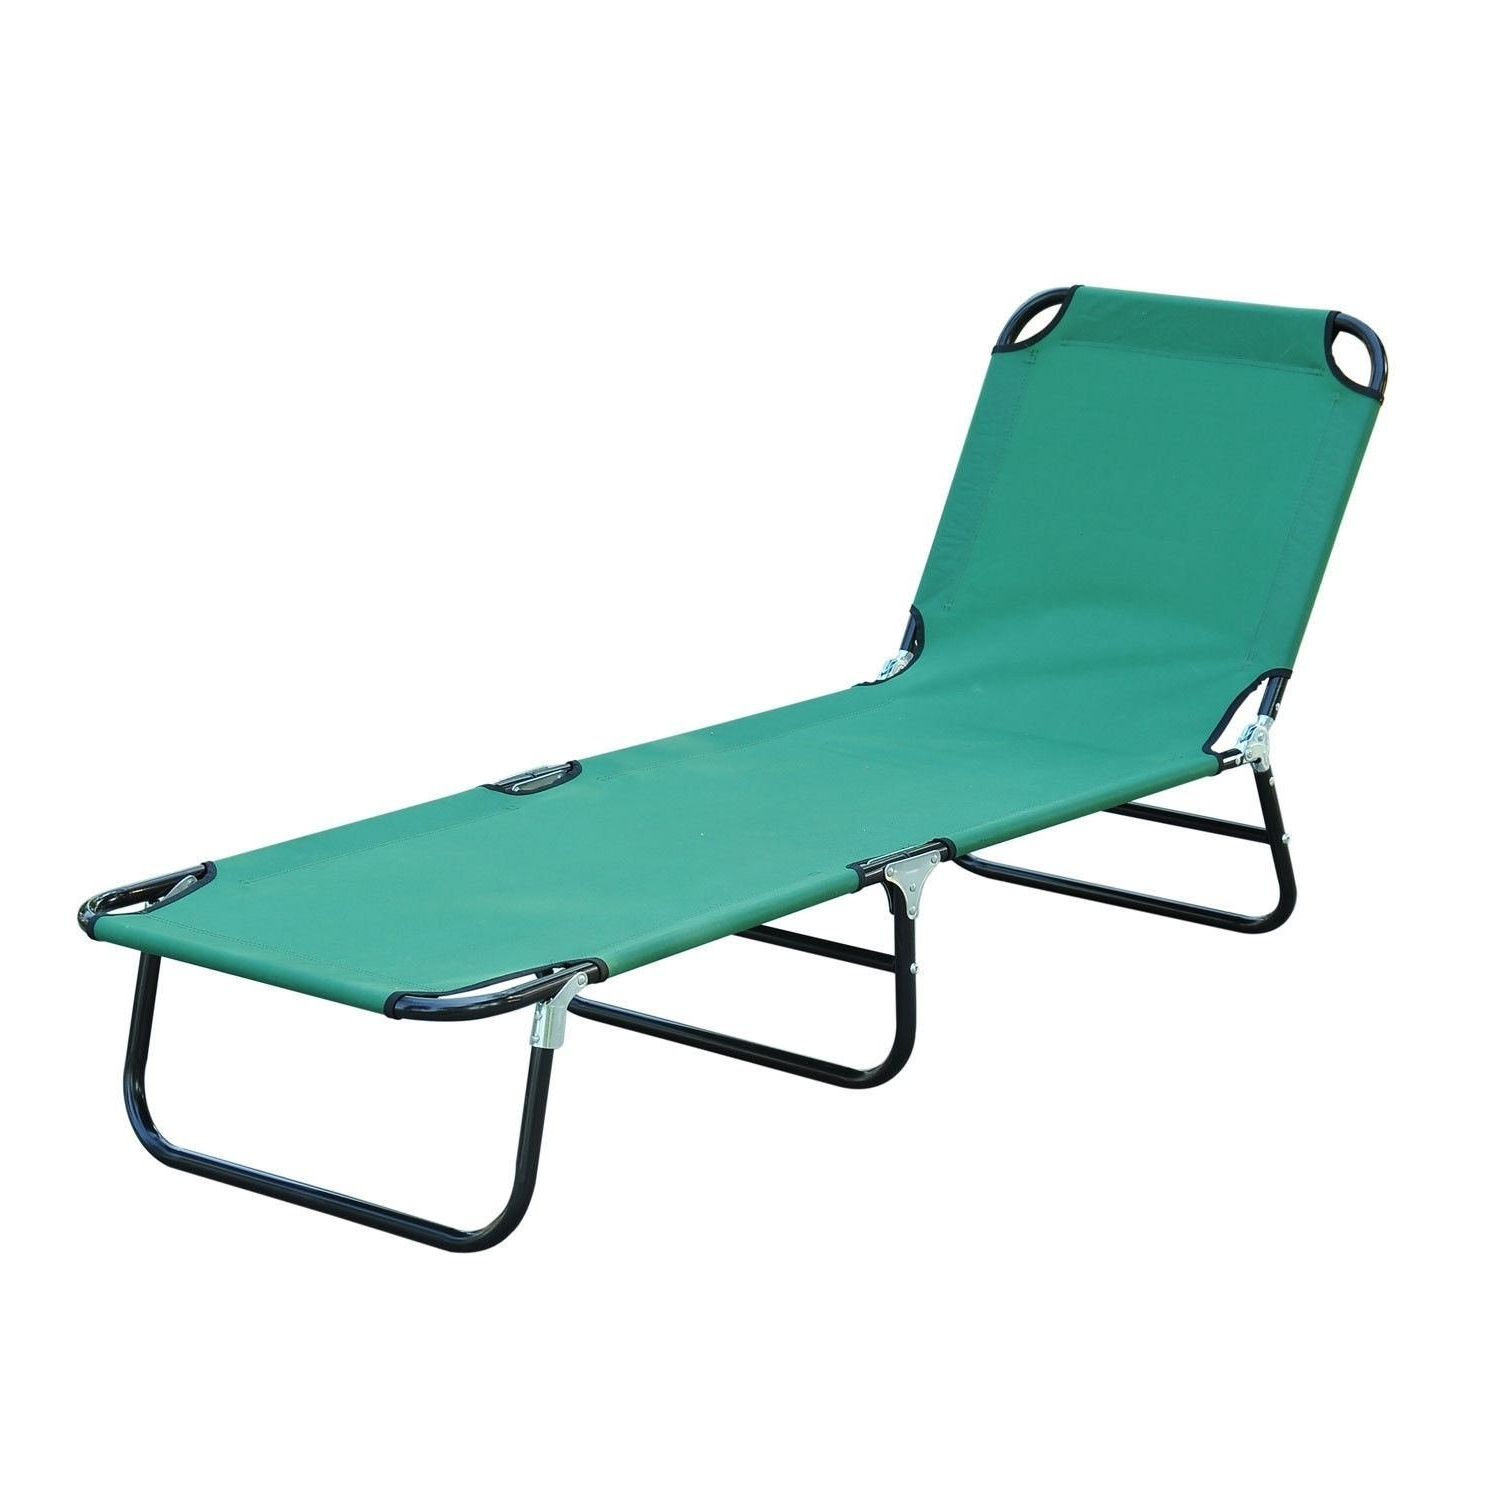 Newest Chaise Lounge Beach Chairs Regarding Lounge Chair : Outdoor Furniture Folding Chaise Lounge Beach Chair (View 14 of 15)